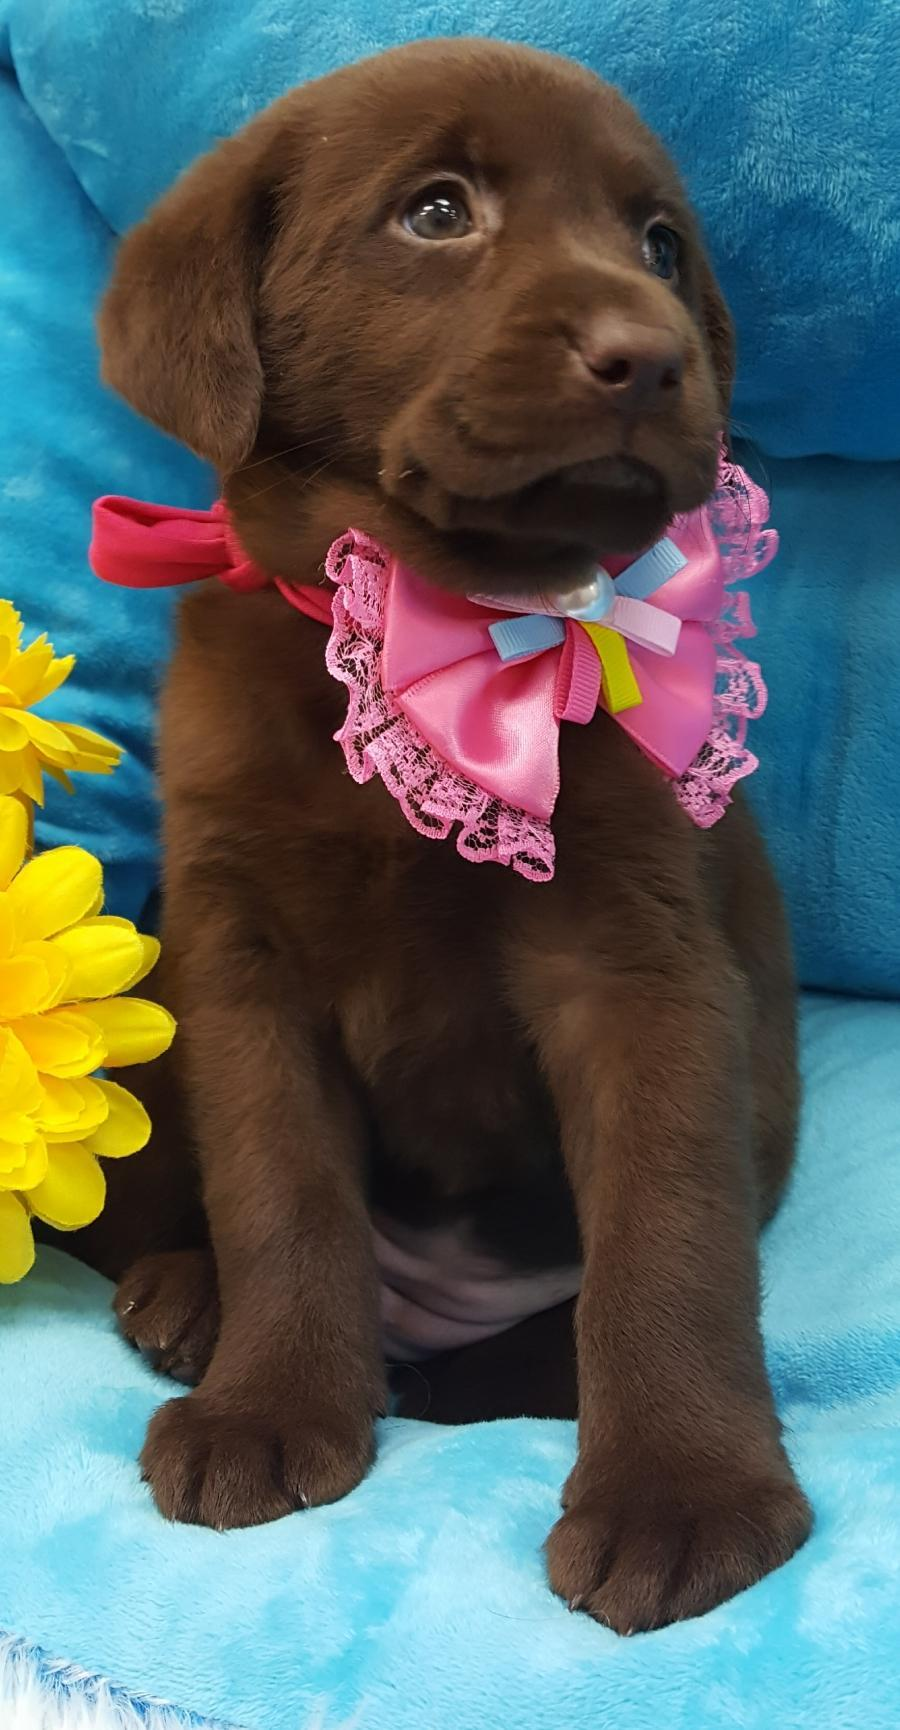 <small><del>Chocolate Labrador retriever</del></small><br />Happy Chocolate Labrador retriever